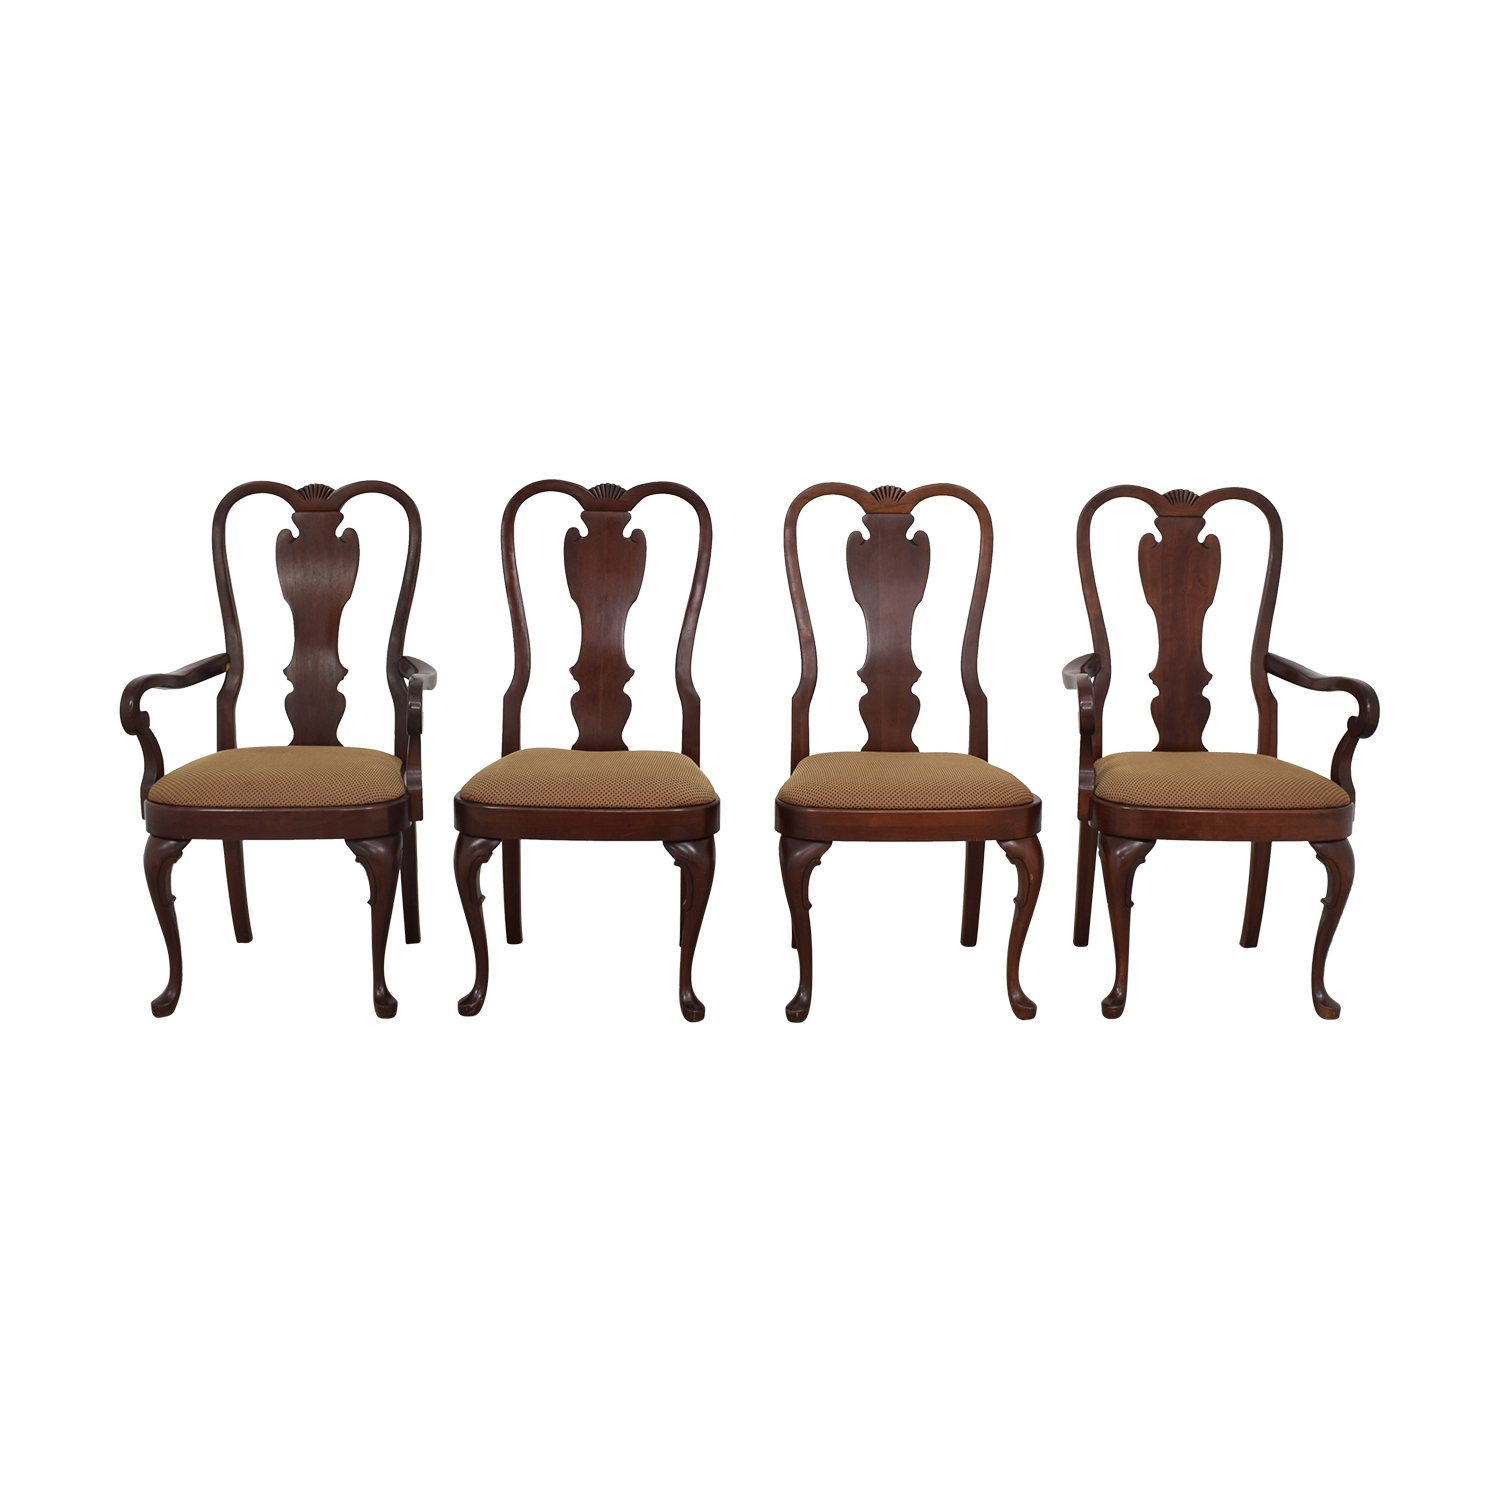 buy Pennsylvania House Pennsylvania House Dining Chairs online